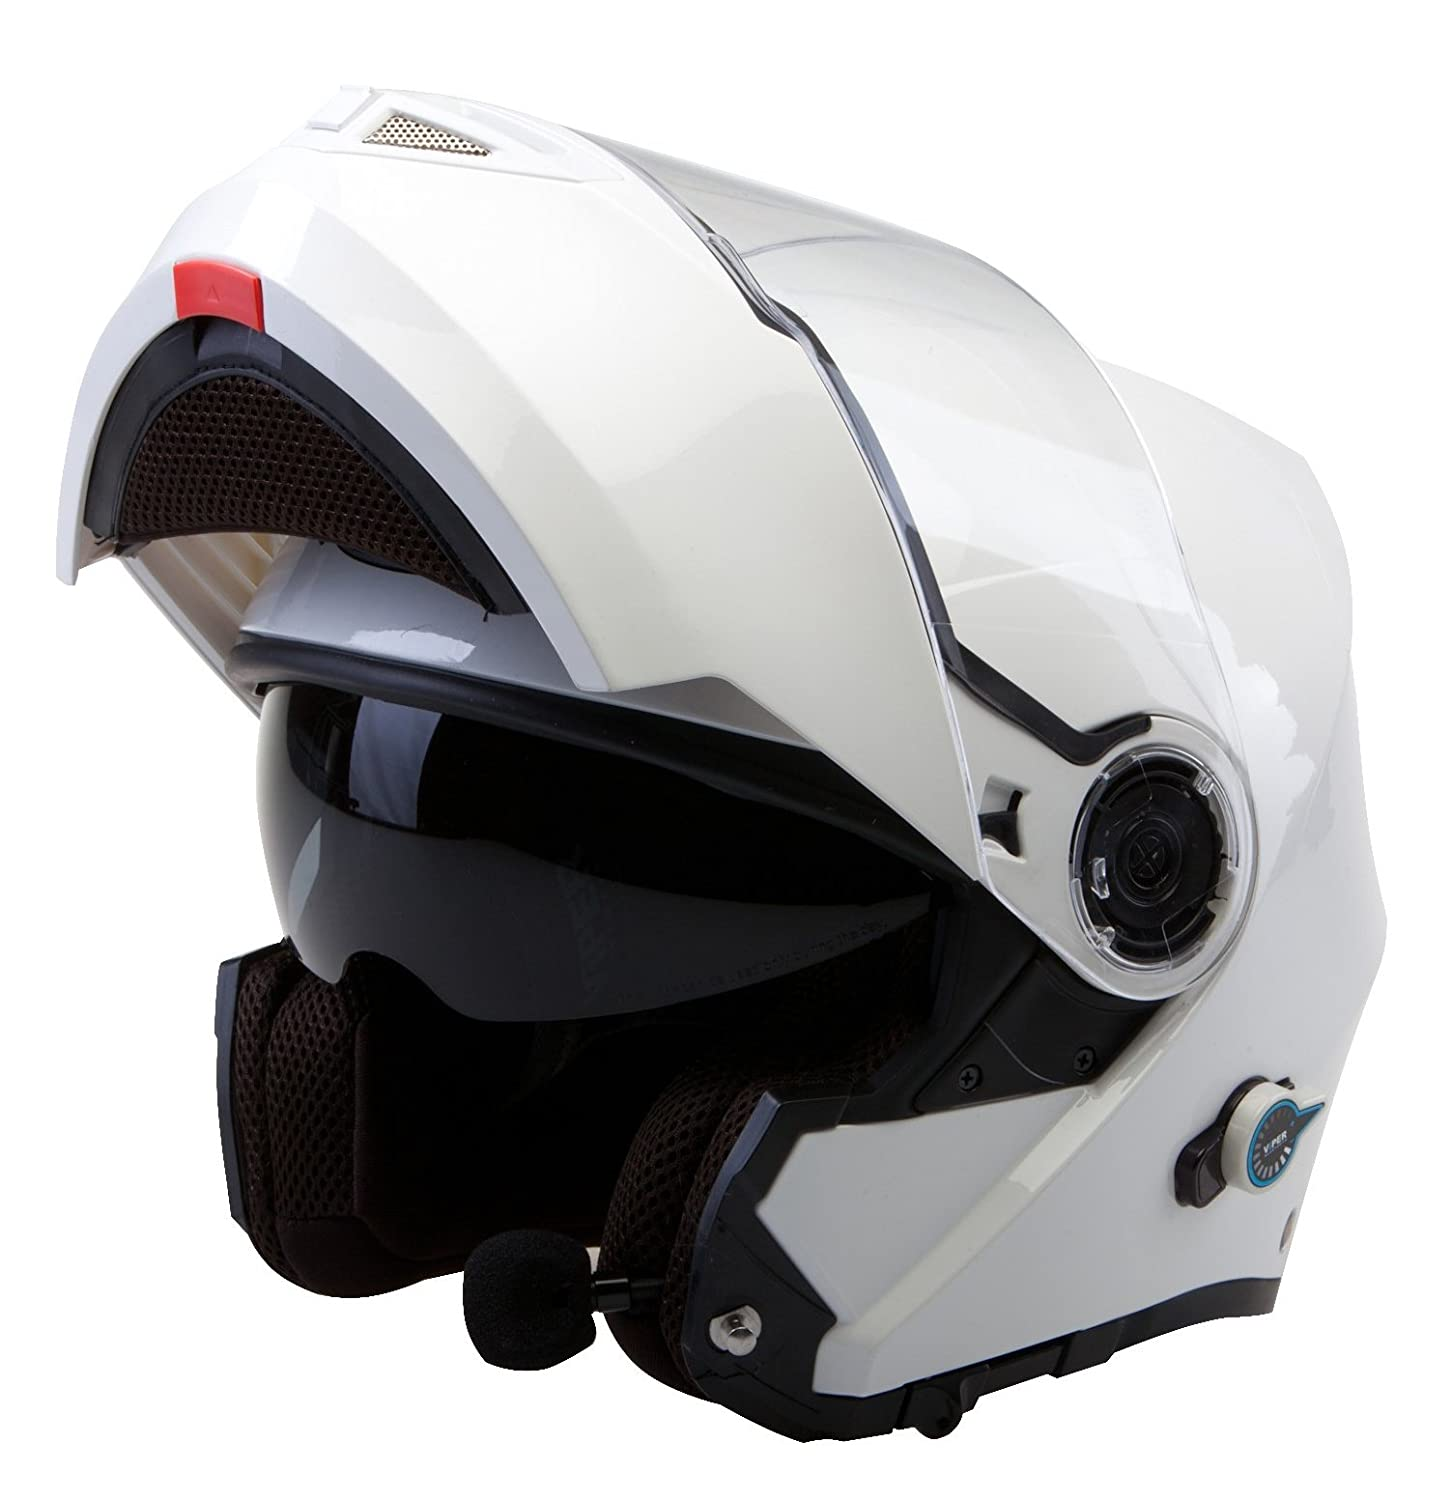 Viper RS-V151 Bluetooth 2.0 Flip up Motorbike Helmet Yellow S Free Alarm Disc Lock with 1.5M Reminder Cable